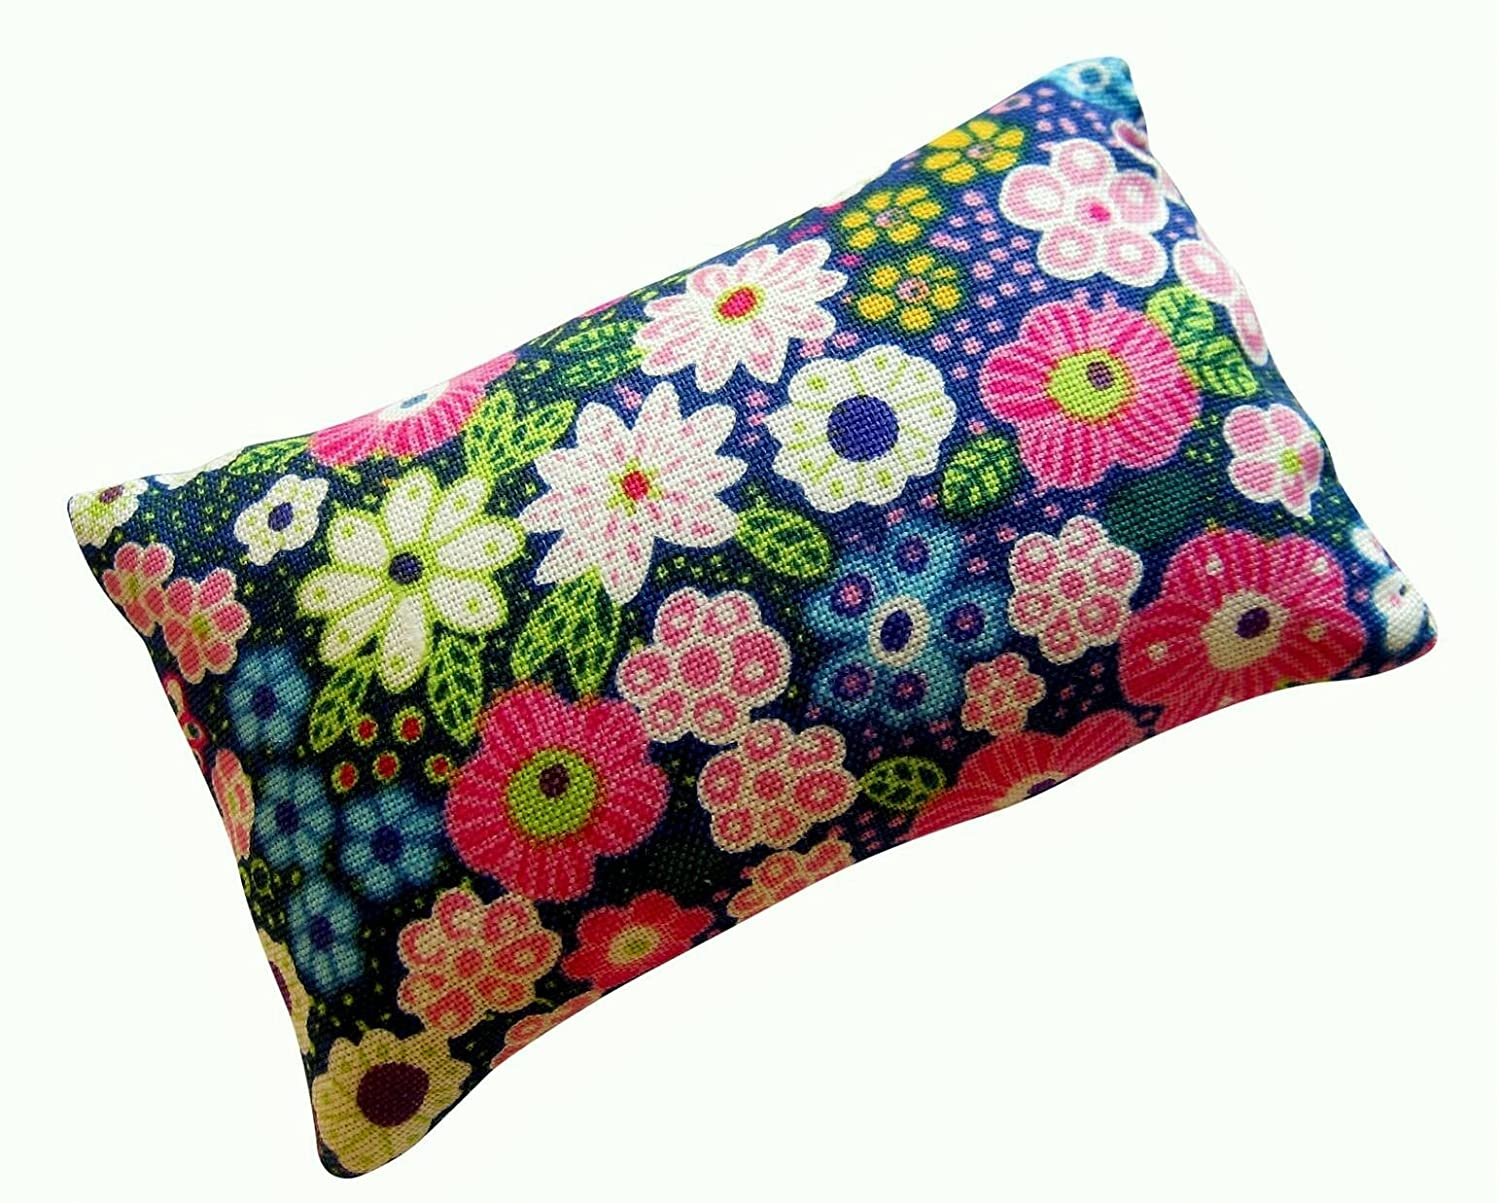 Nakpunar Emery Pincushion - Keep your needles clean and sharp - Filled with Abrasive Emery Mineral - Blue Floral 4337009518